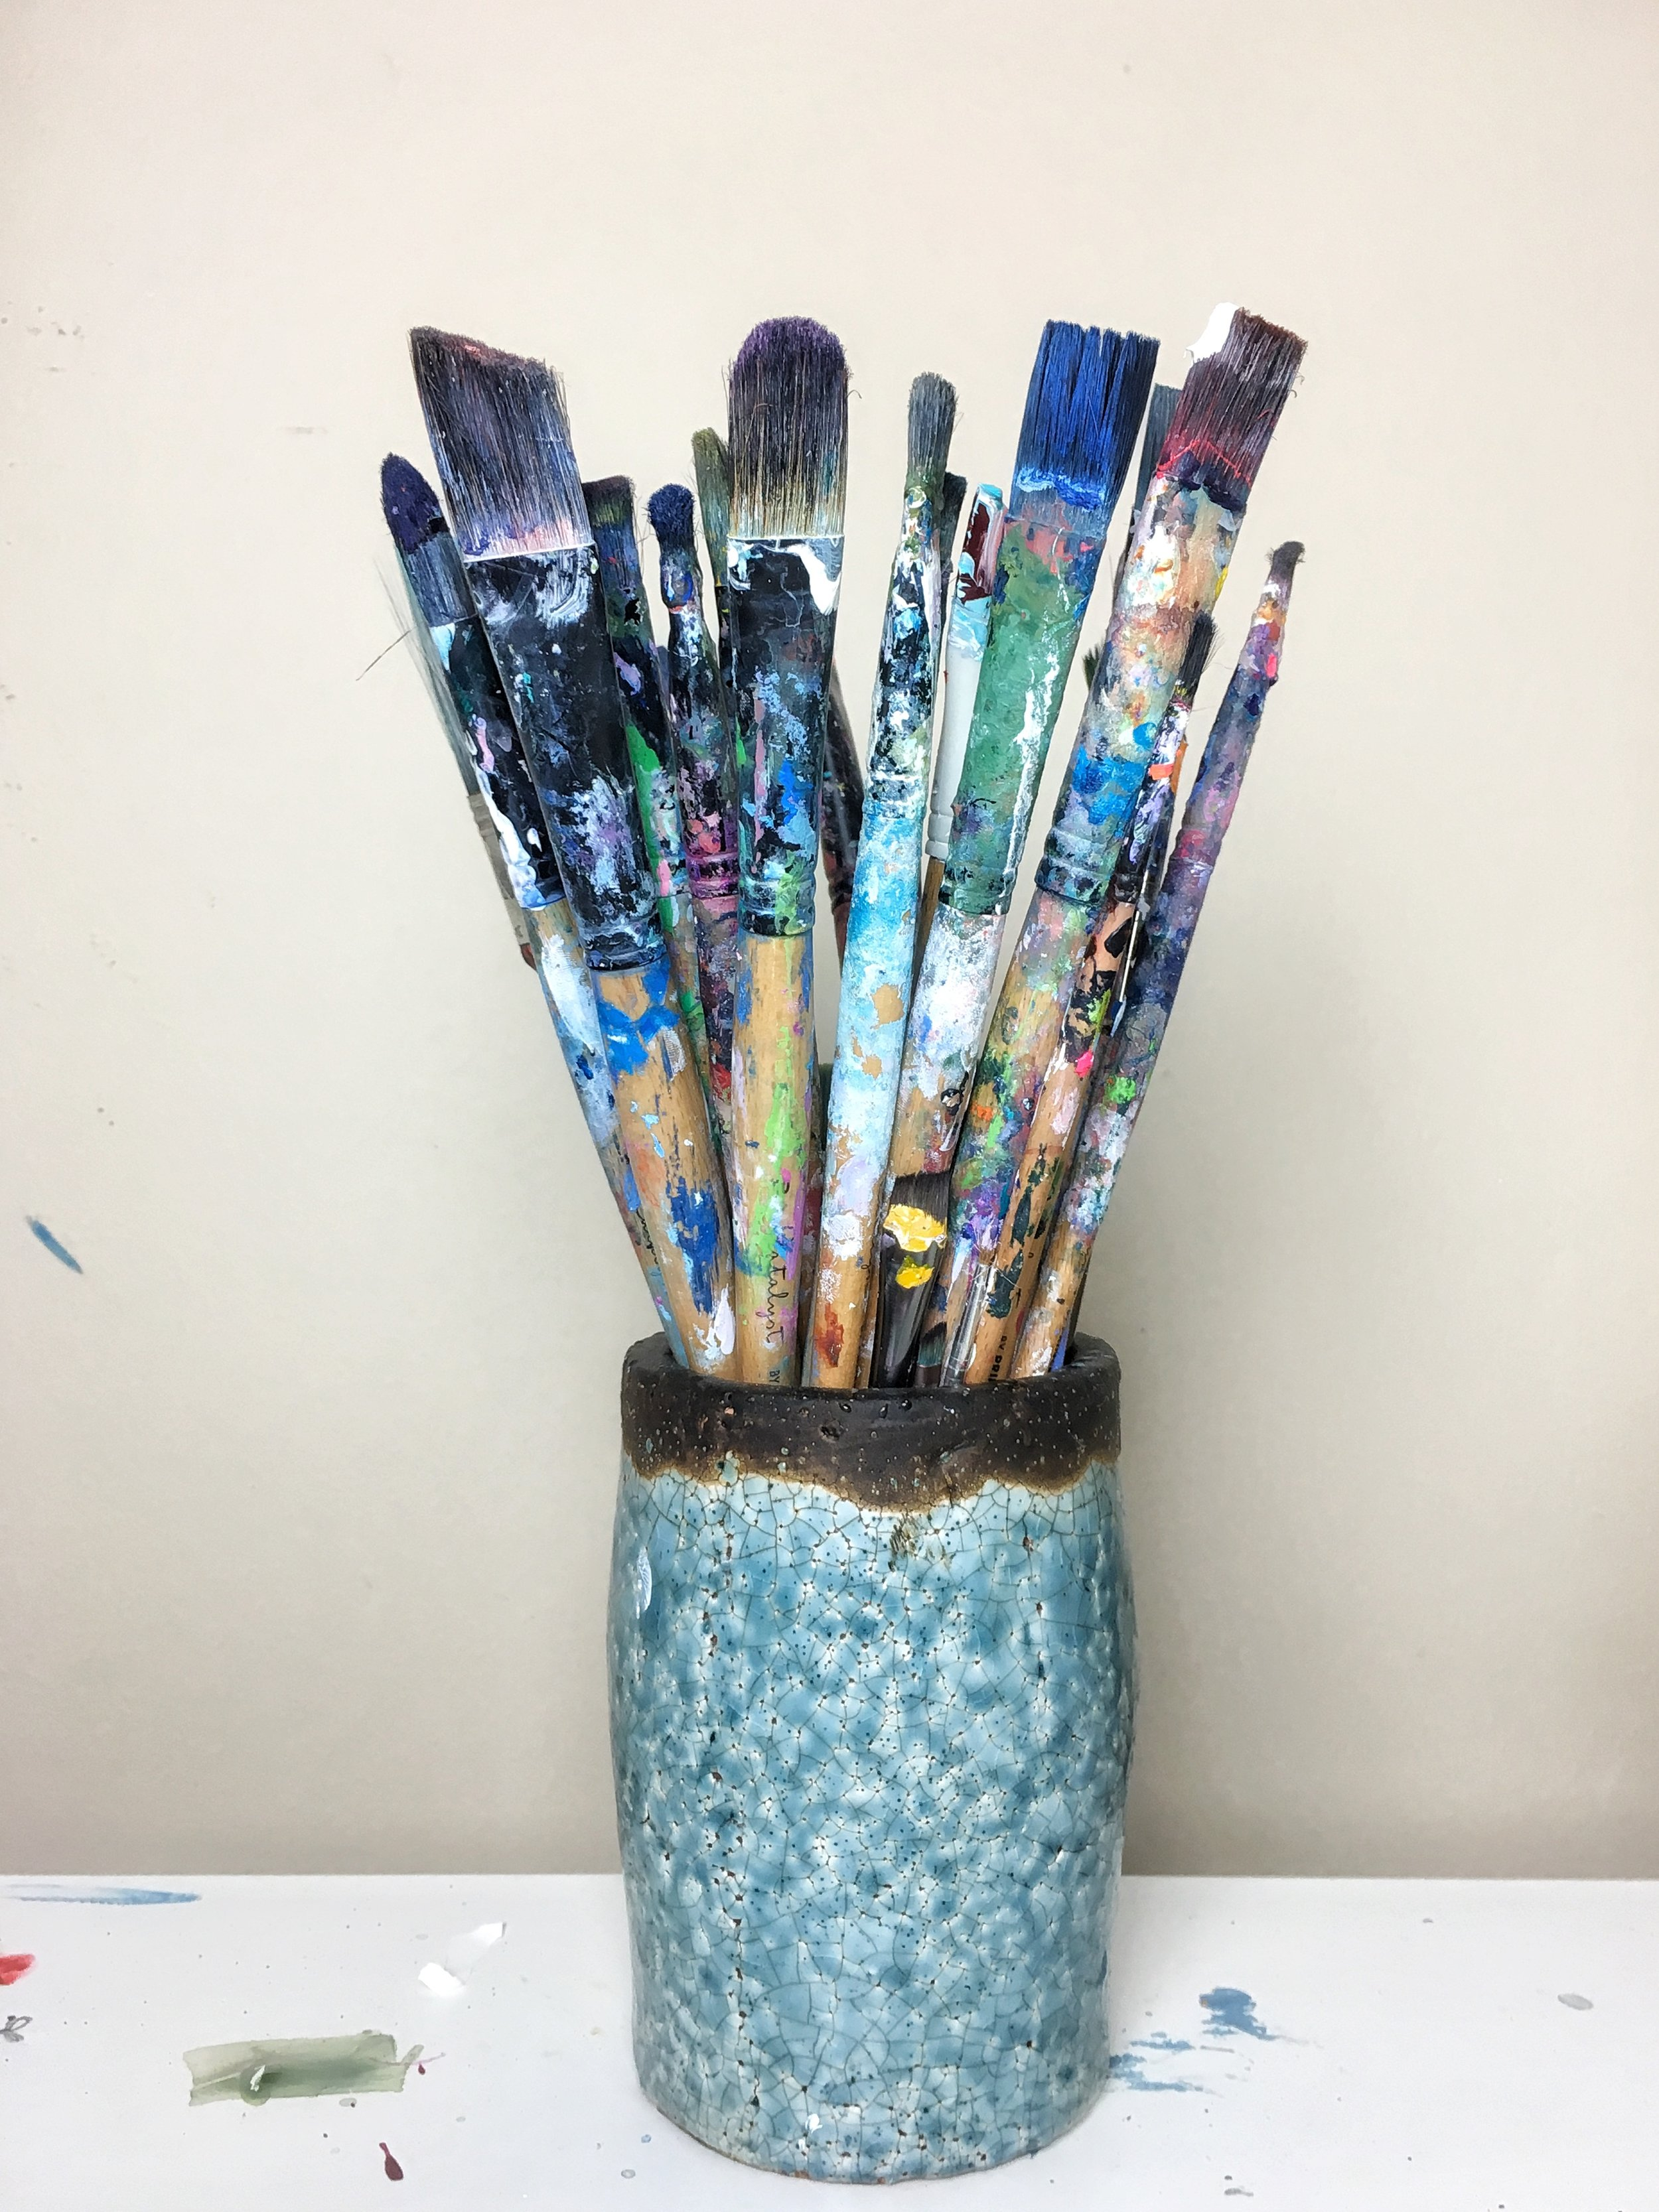 I keep my brushes in a pretty ceramic vase.